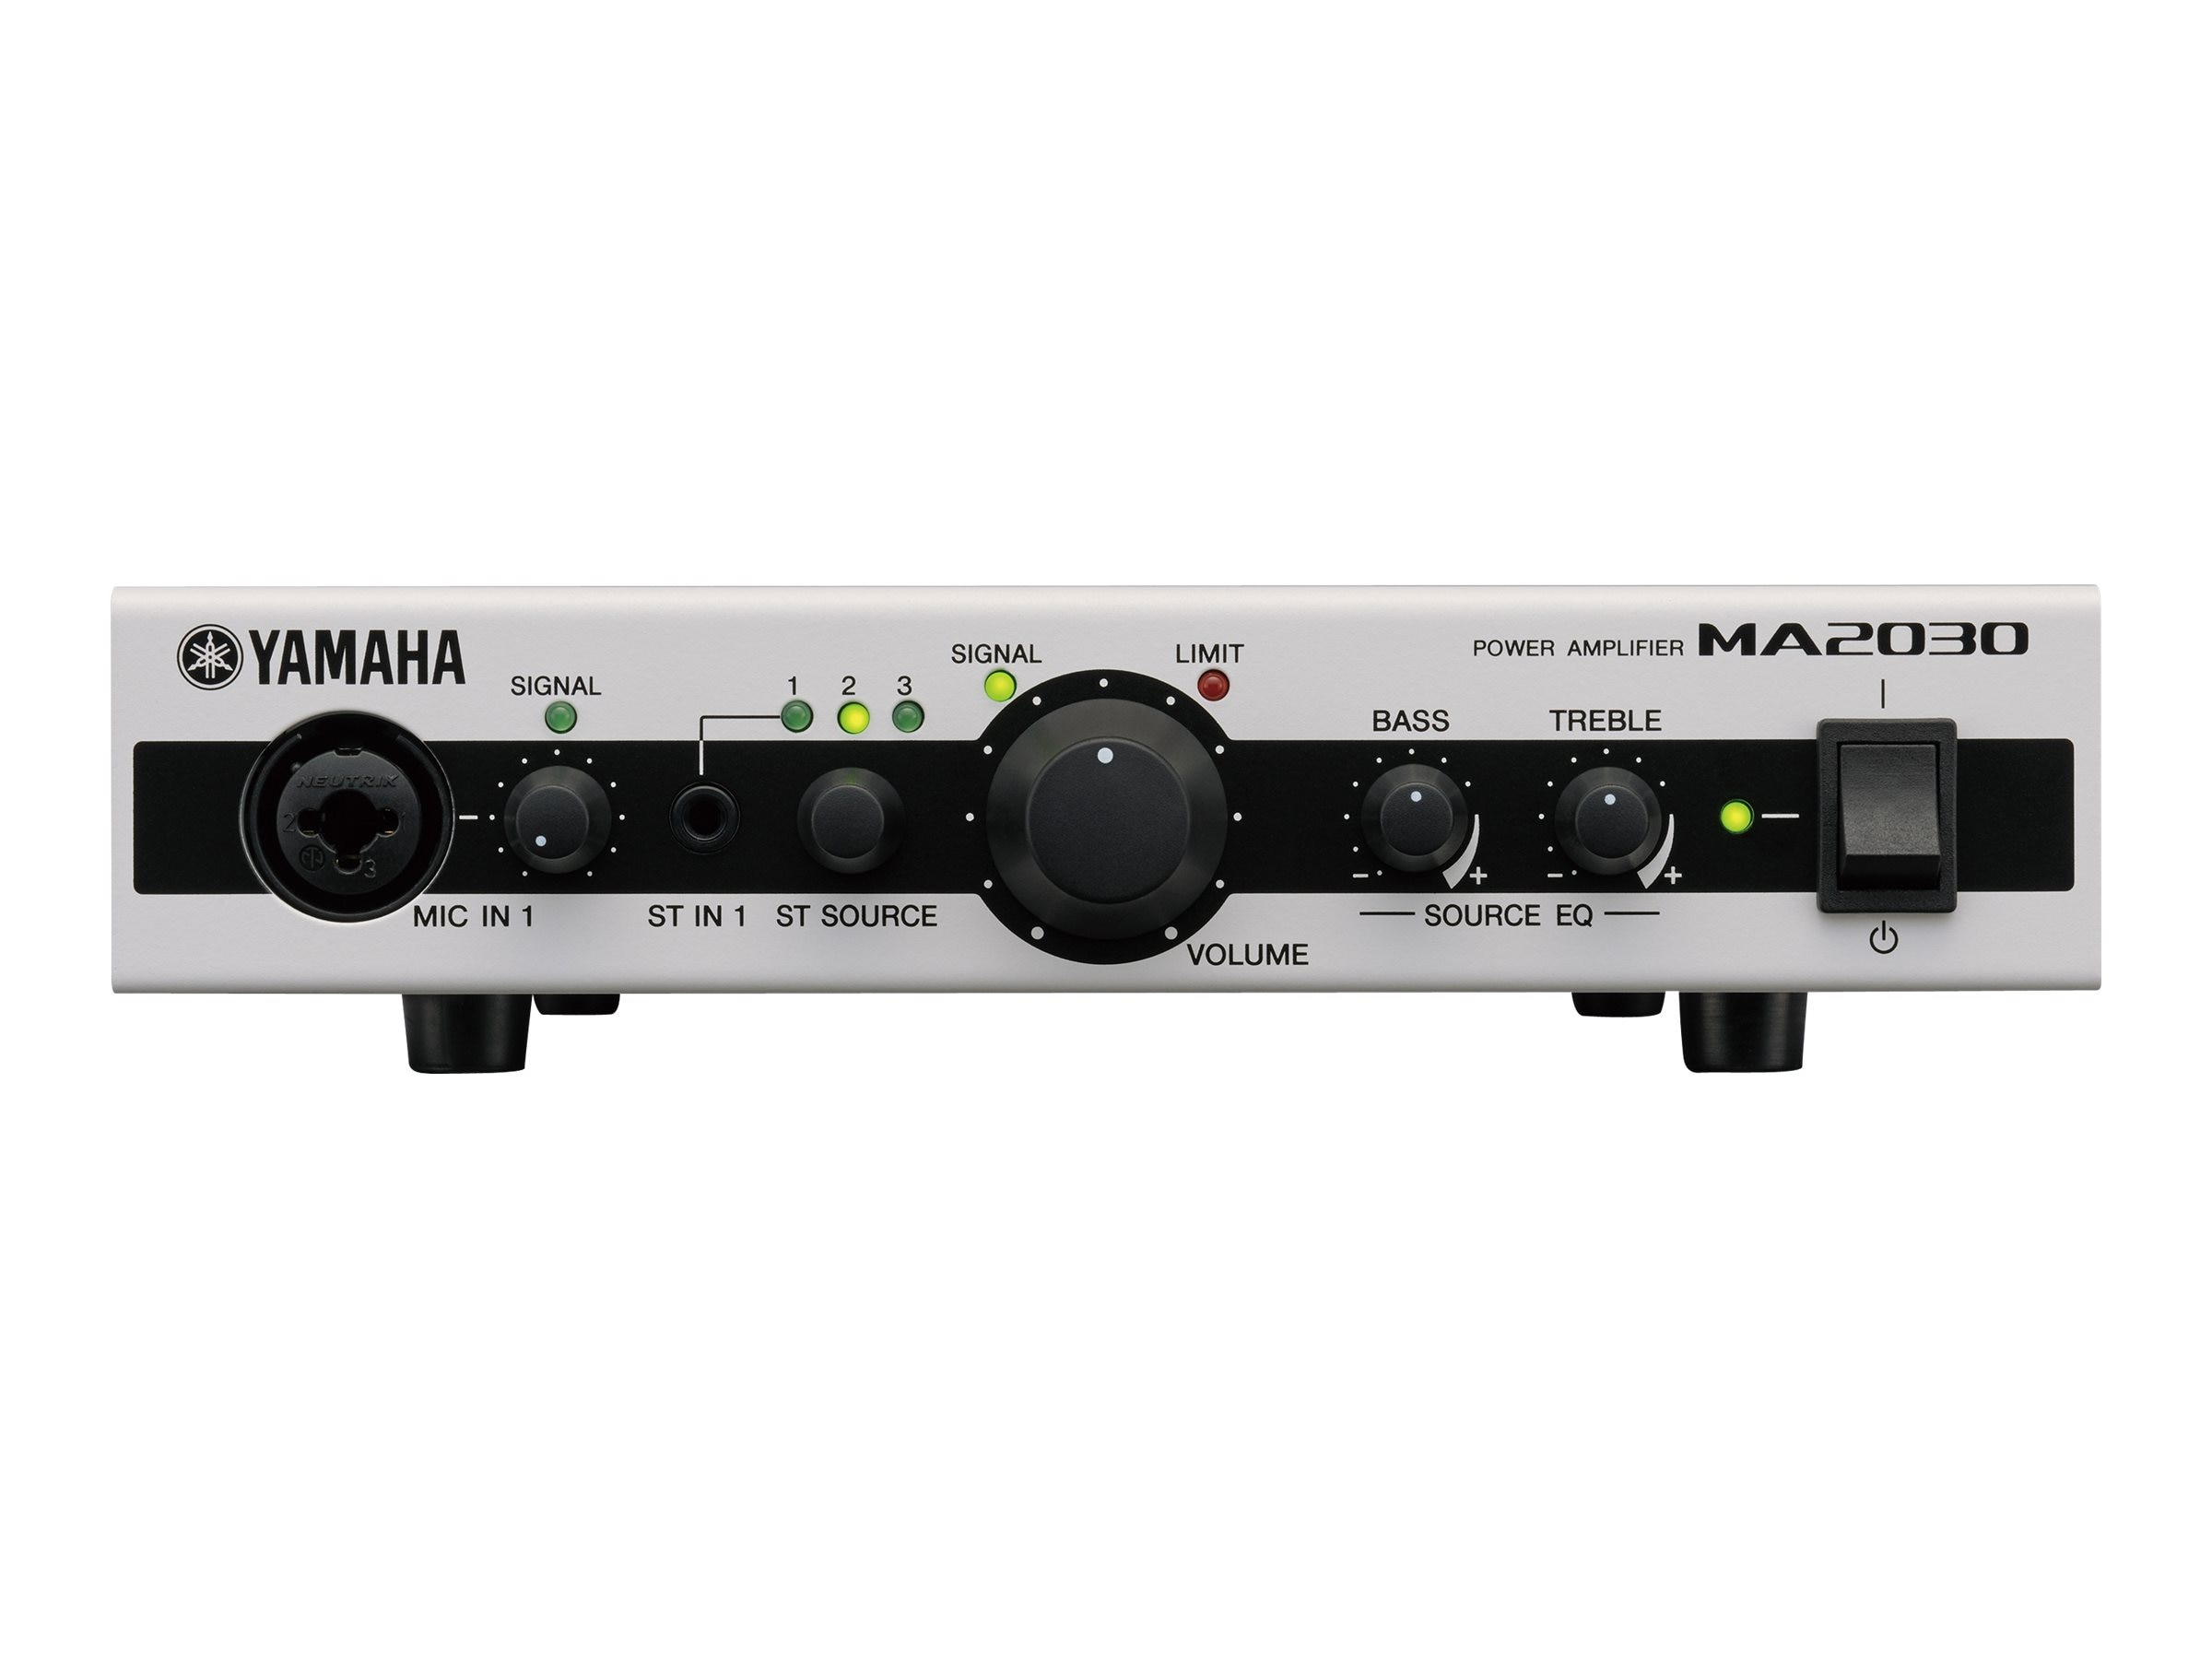 Yamaha Commercial Mixer  Amplifier, MA2030